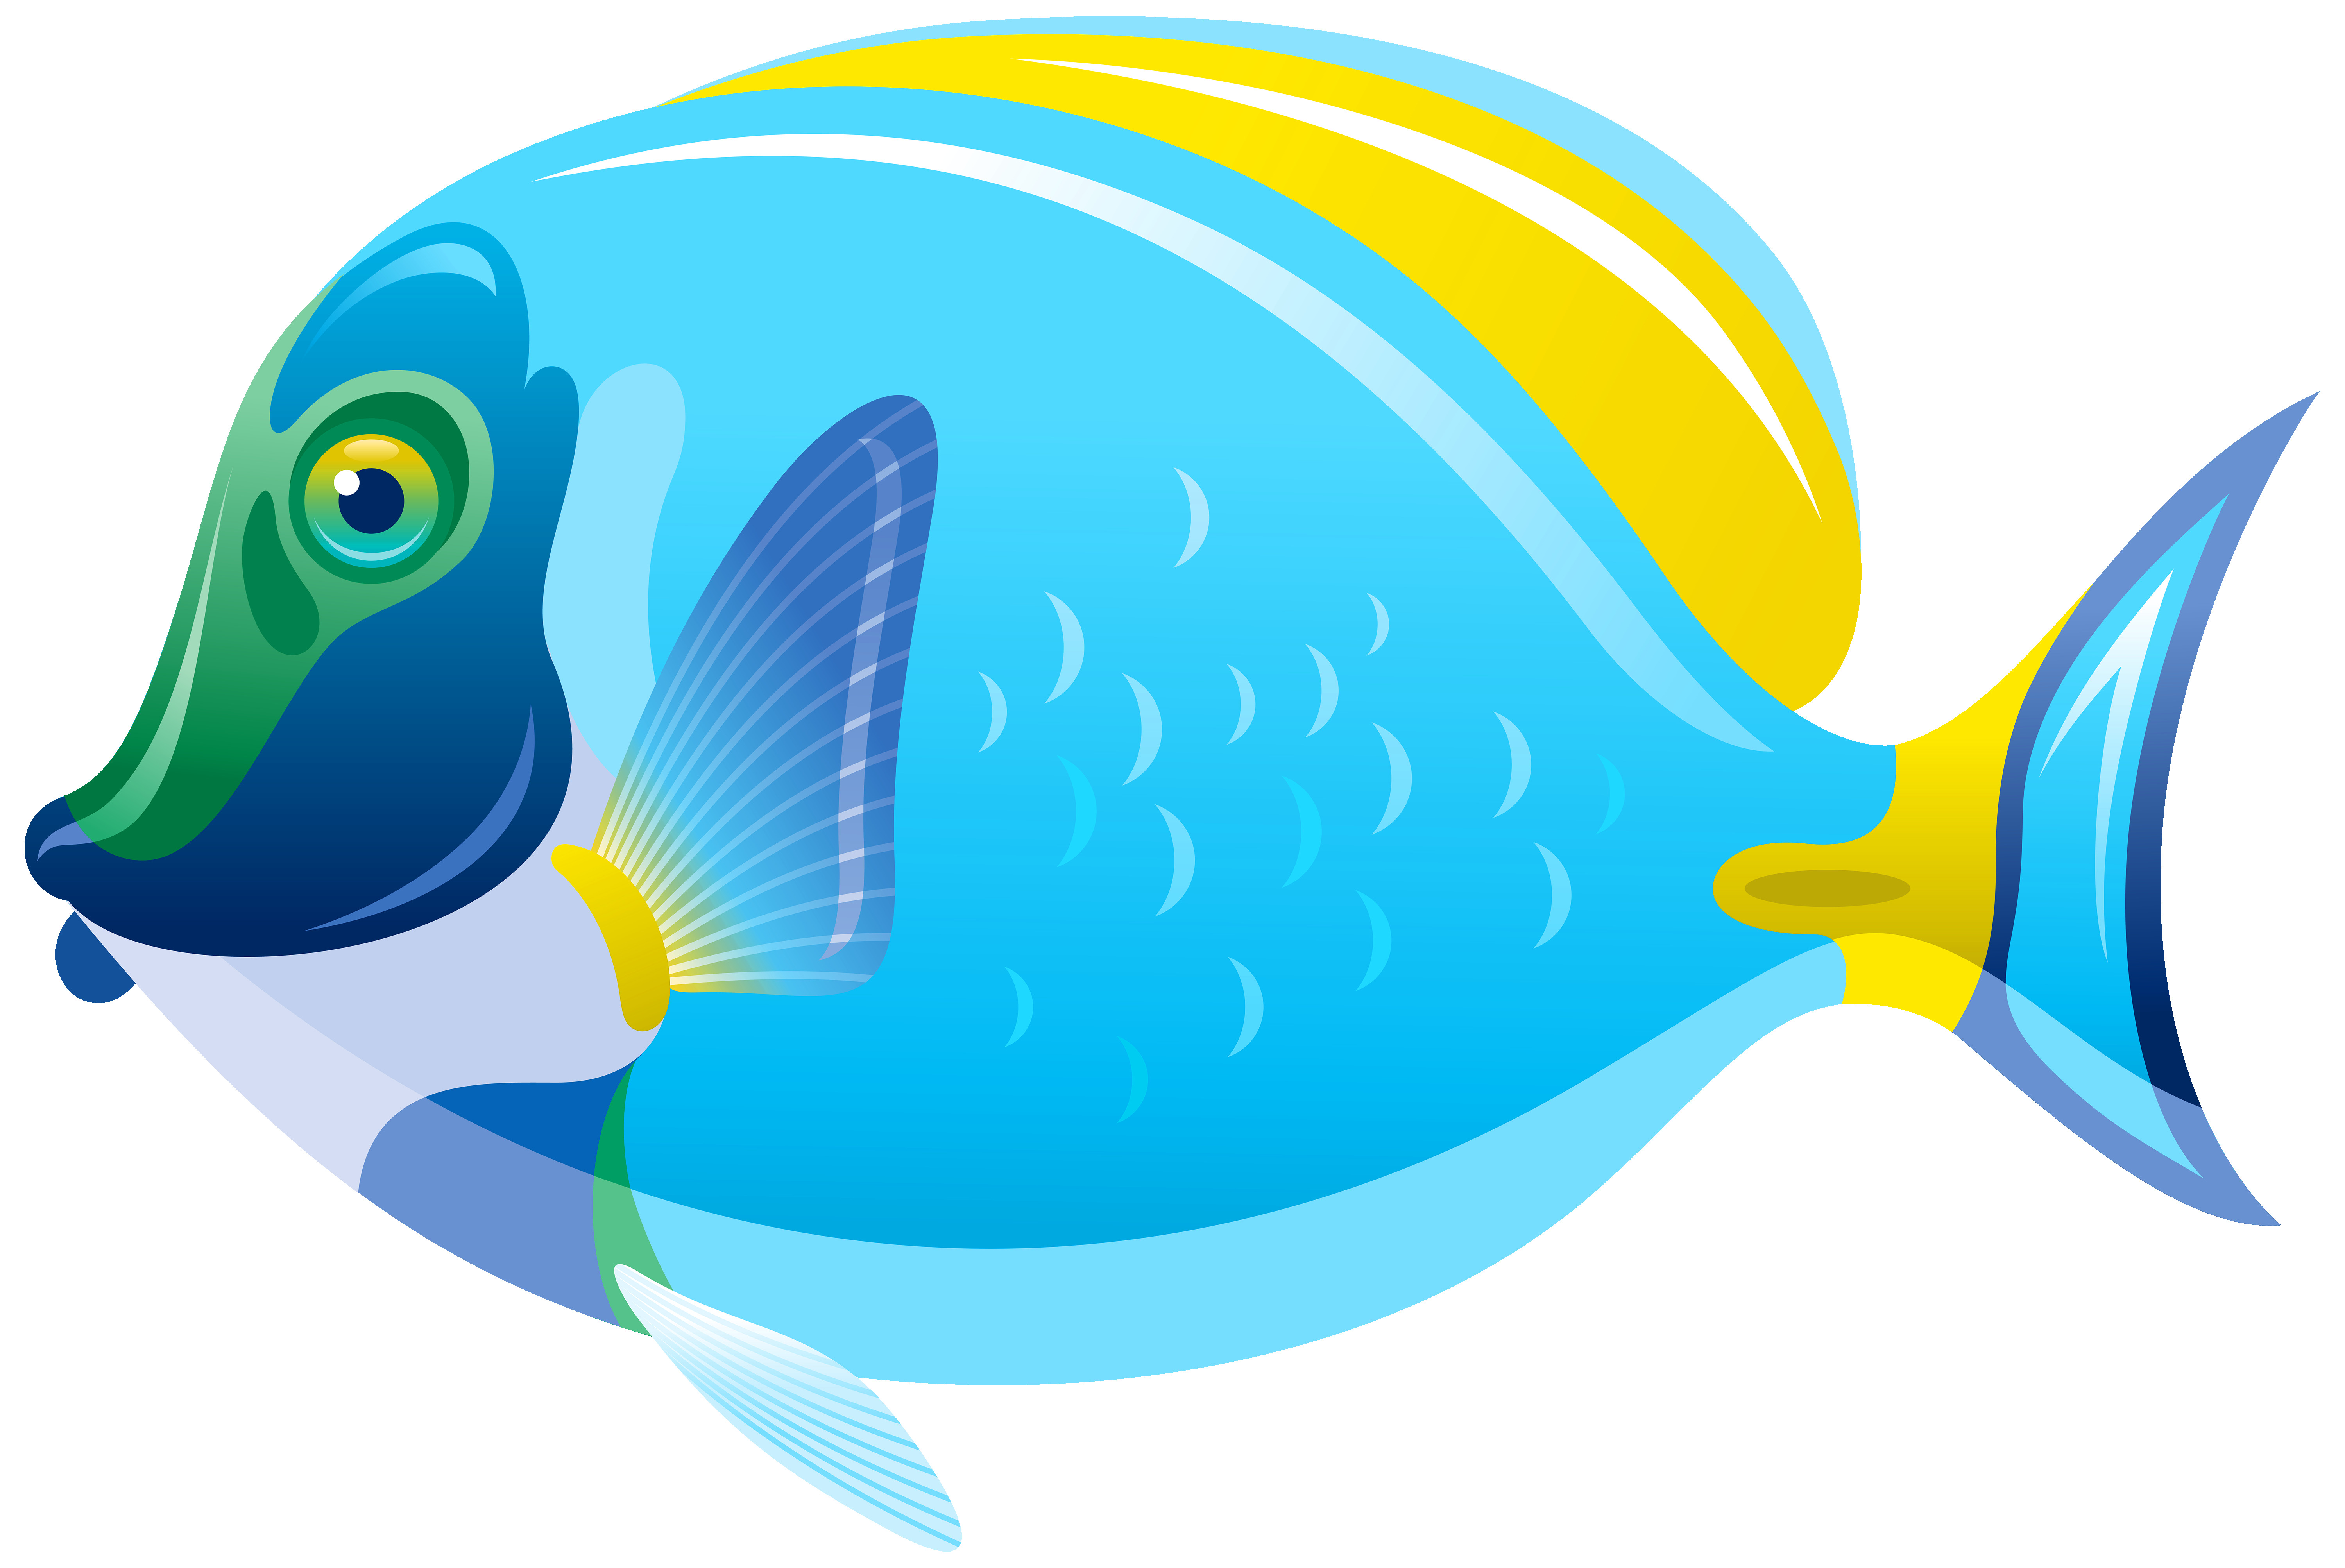 6000x4012 Cute Fish Clip Art Various Fishes Collection 3 Vector Fancy Image